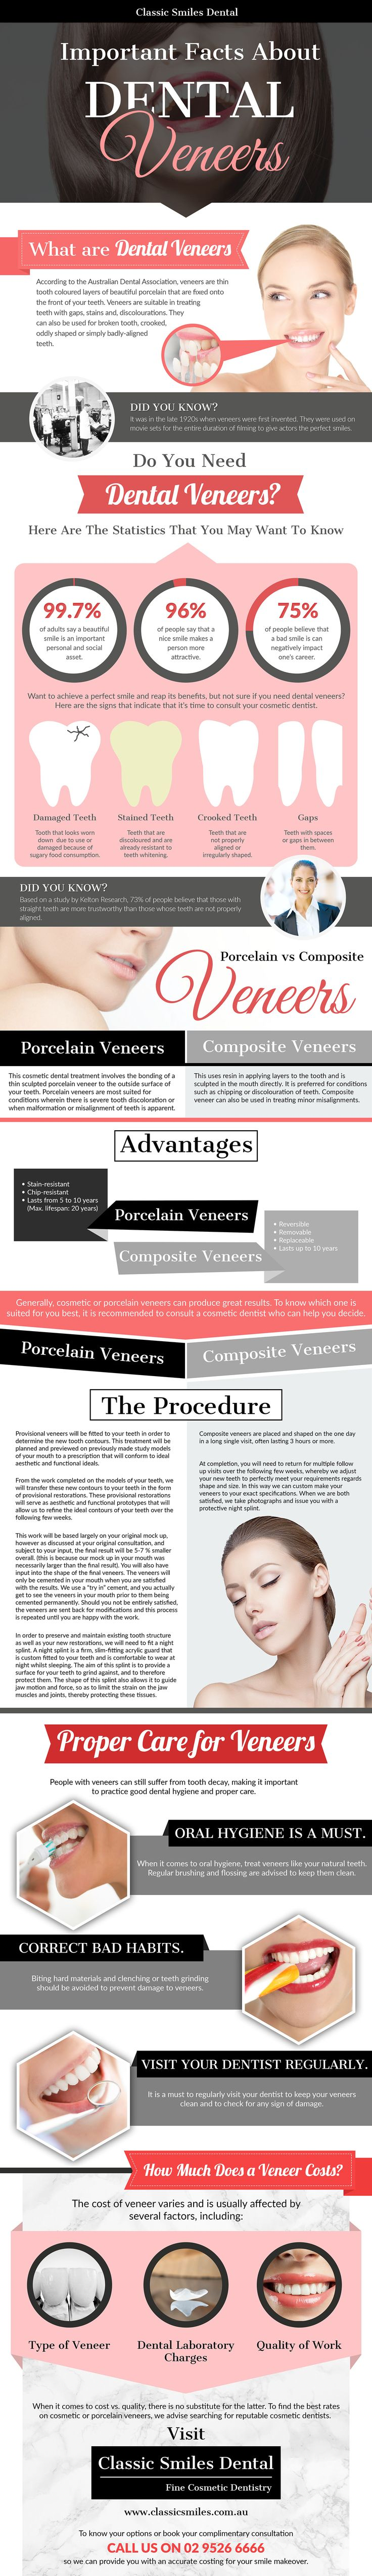 Important Facts About Dental Veneers